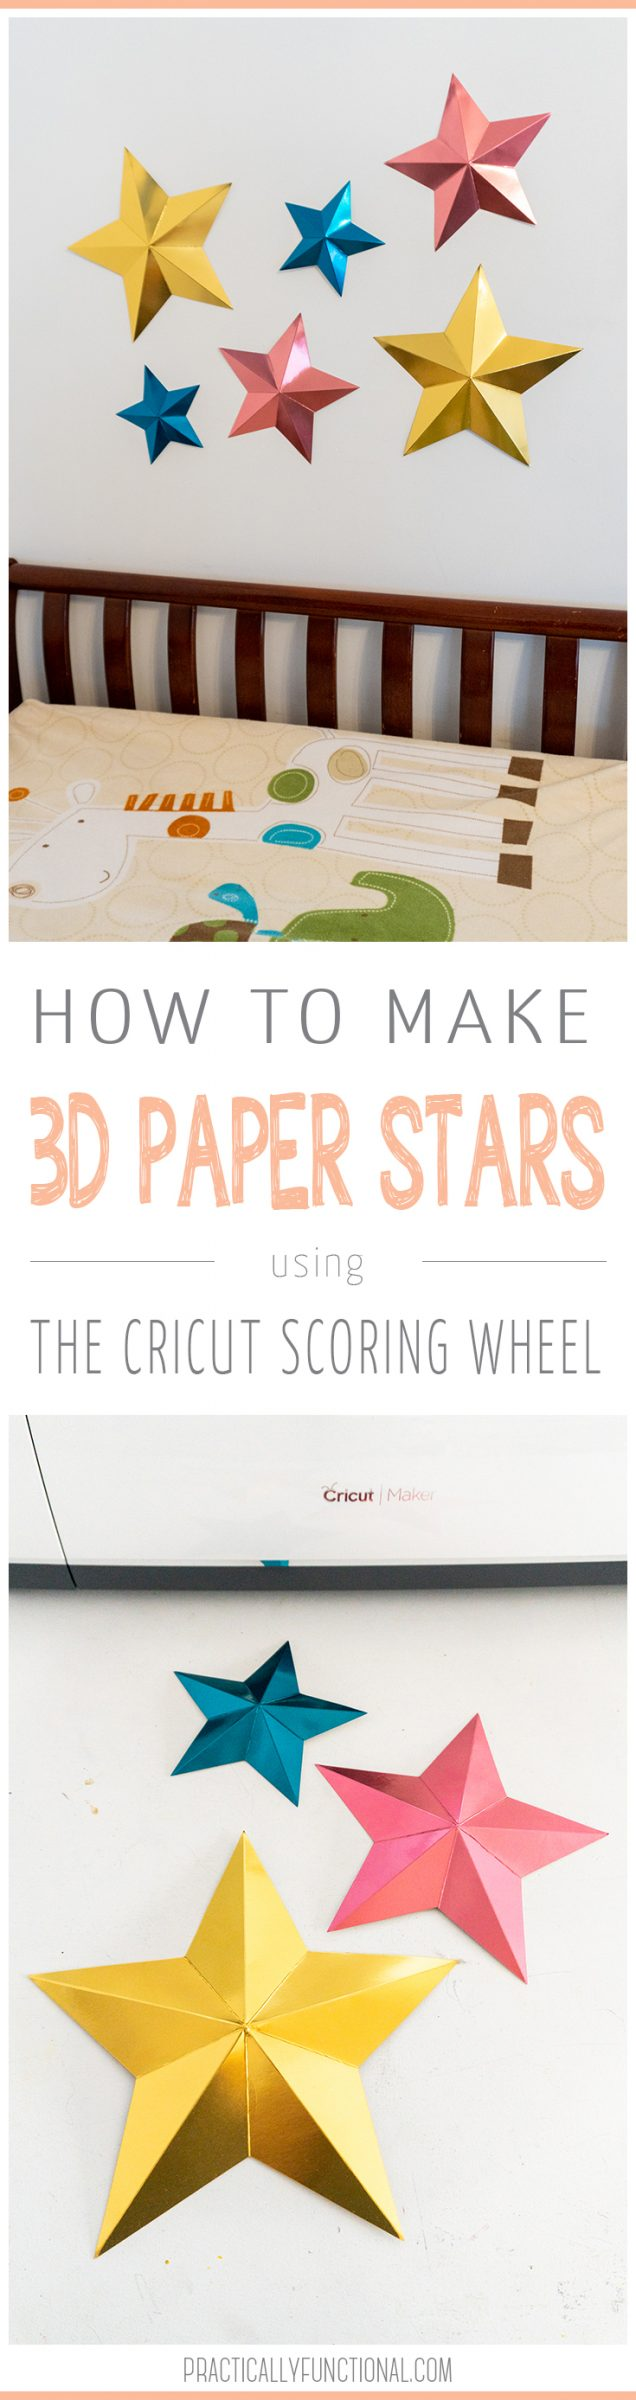 Learn how to use your Cricut scoring wheel to make these cute 3D paper stars! These make the cutest nursery mobile and are great for holiday crafts too! #cricutcrafts #cricutscoringwheel